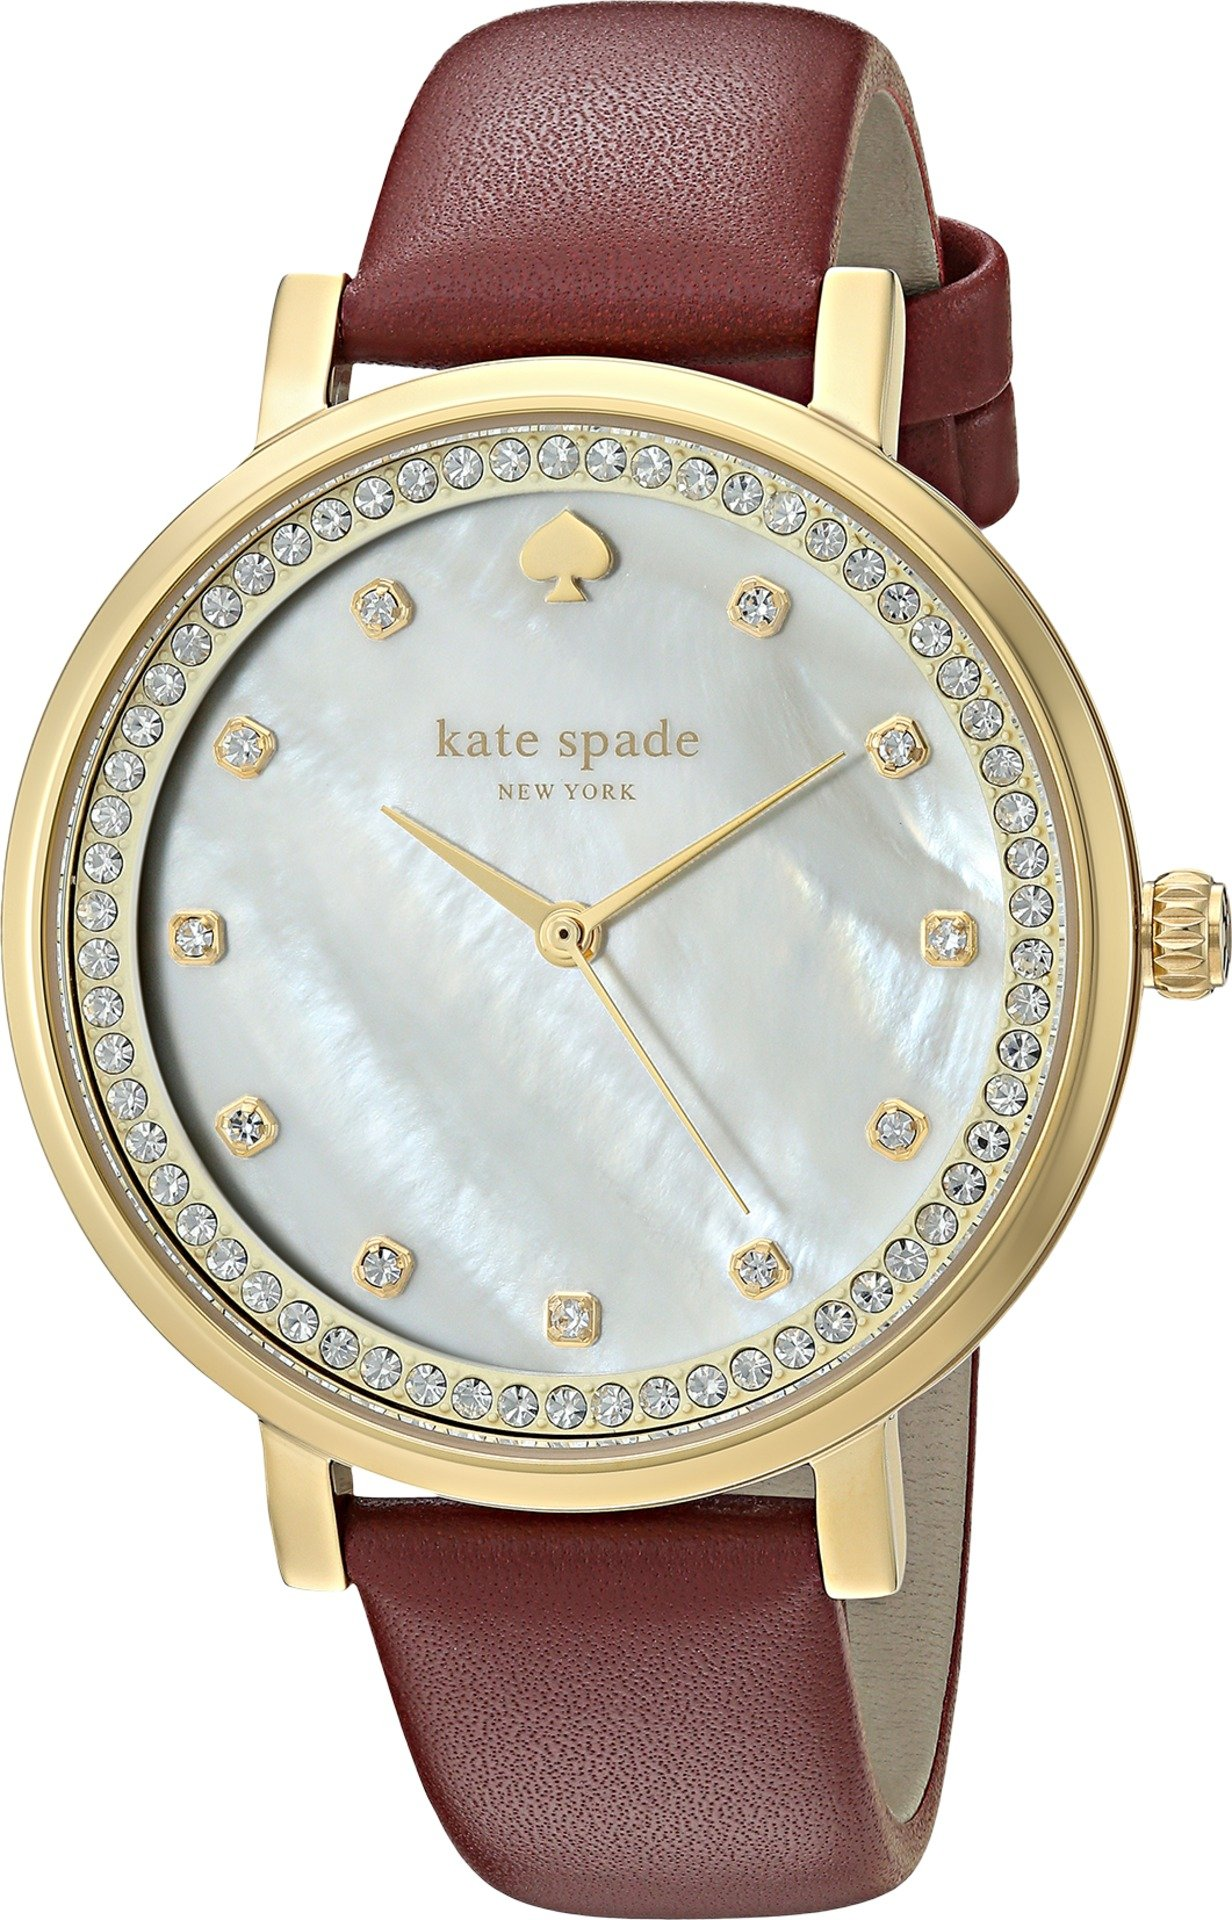 kate spade new york Women's KSW1170 Monterey Analog Display Quartz Red Watch